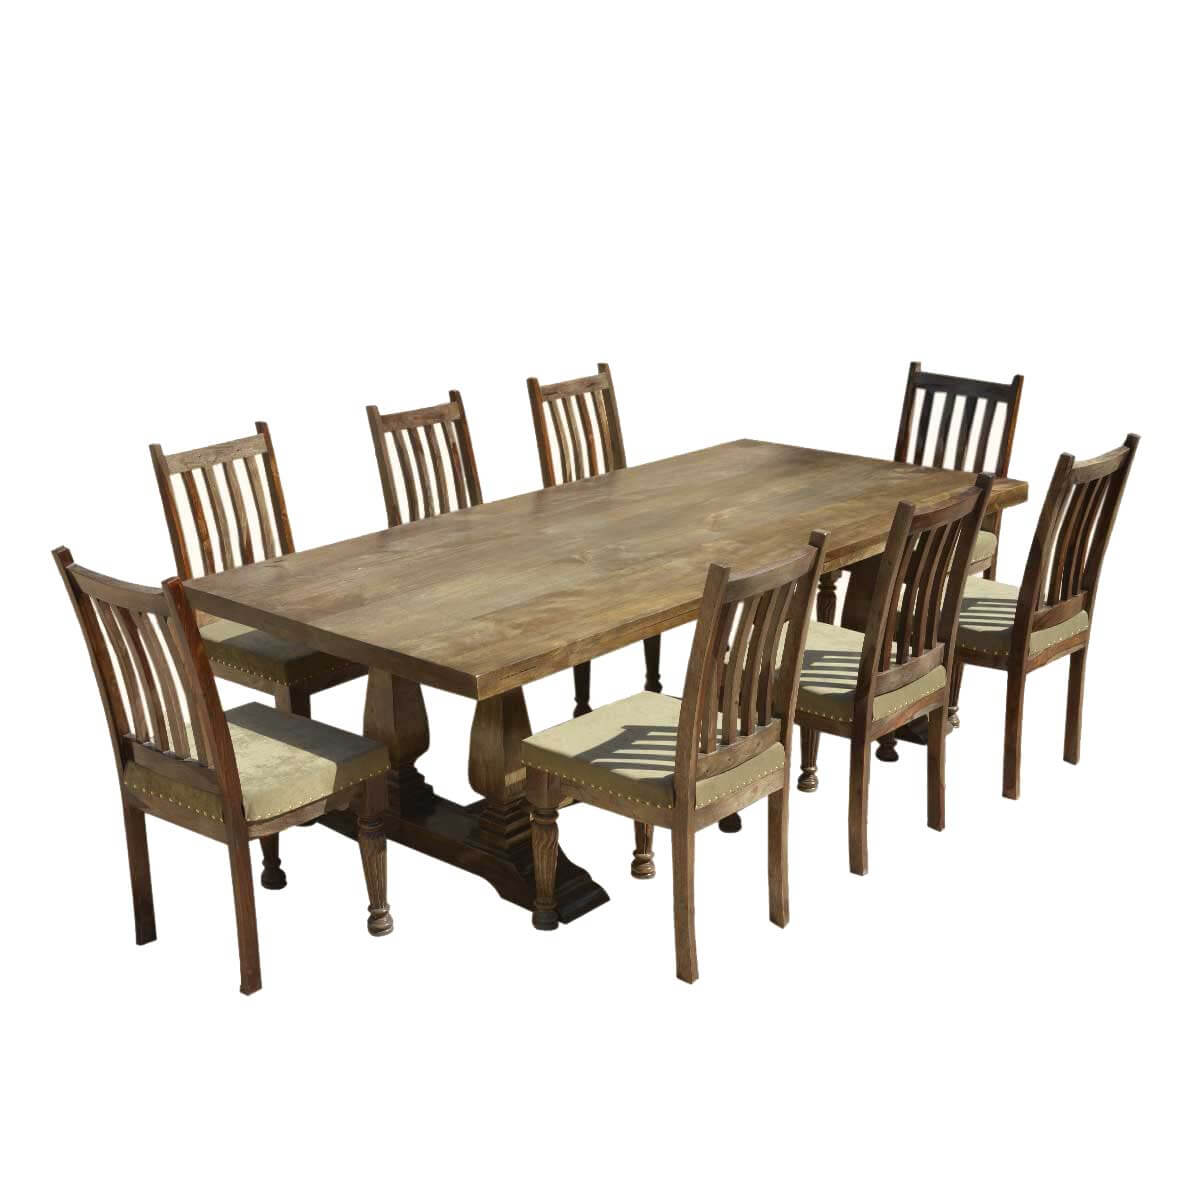 Farmhouse Solid Wood Trestle Rustic Dining Table